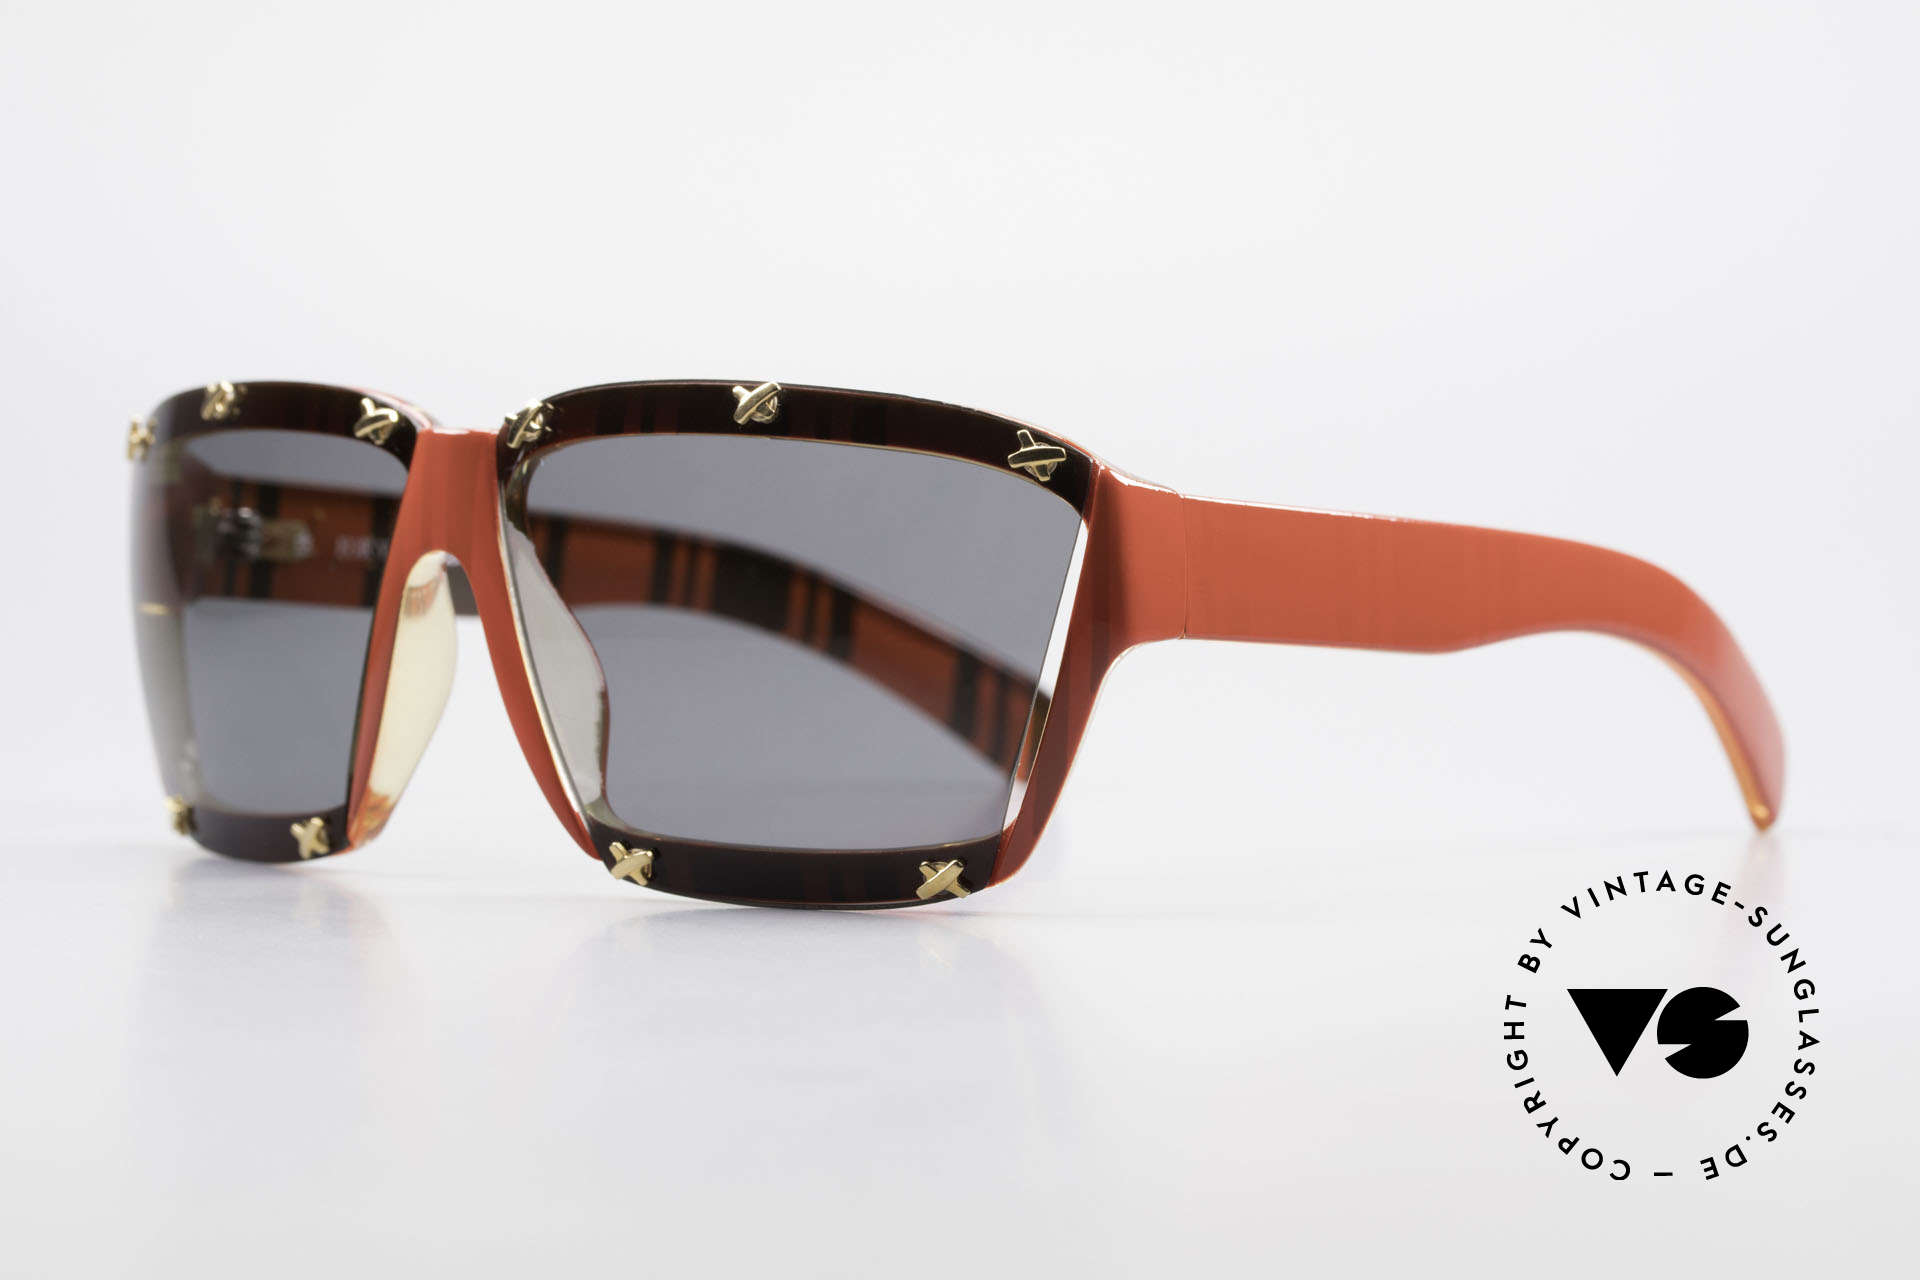 Paloma Picasso 3702 No Retro Sunglasses Ladies, just another masterwork from Picasso's art school!, Made for Women